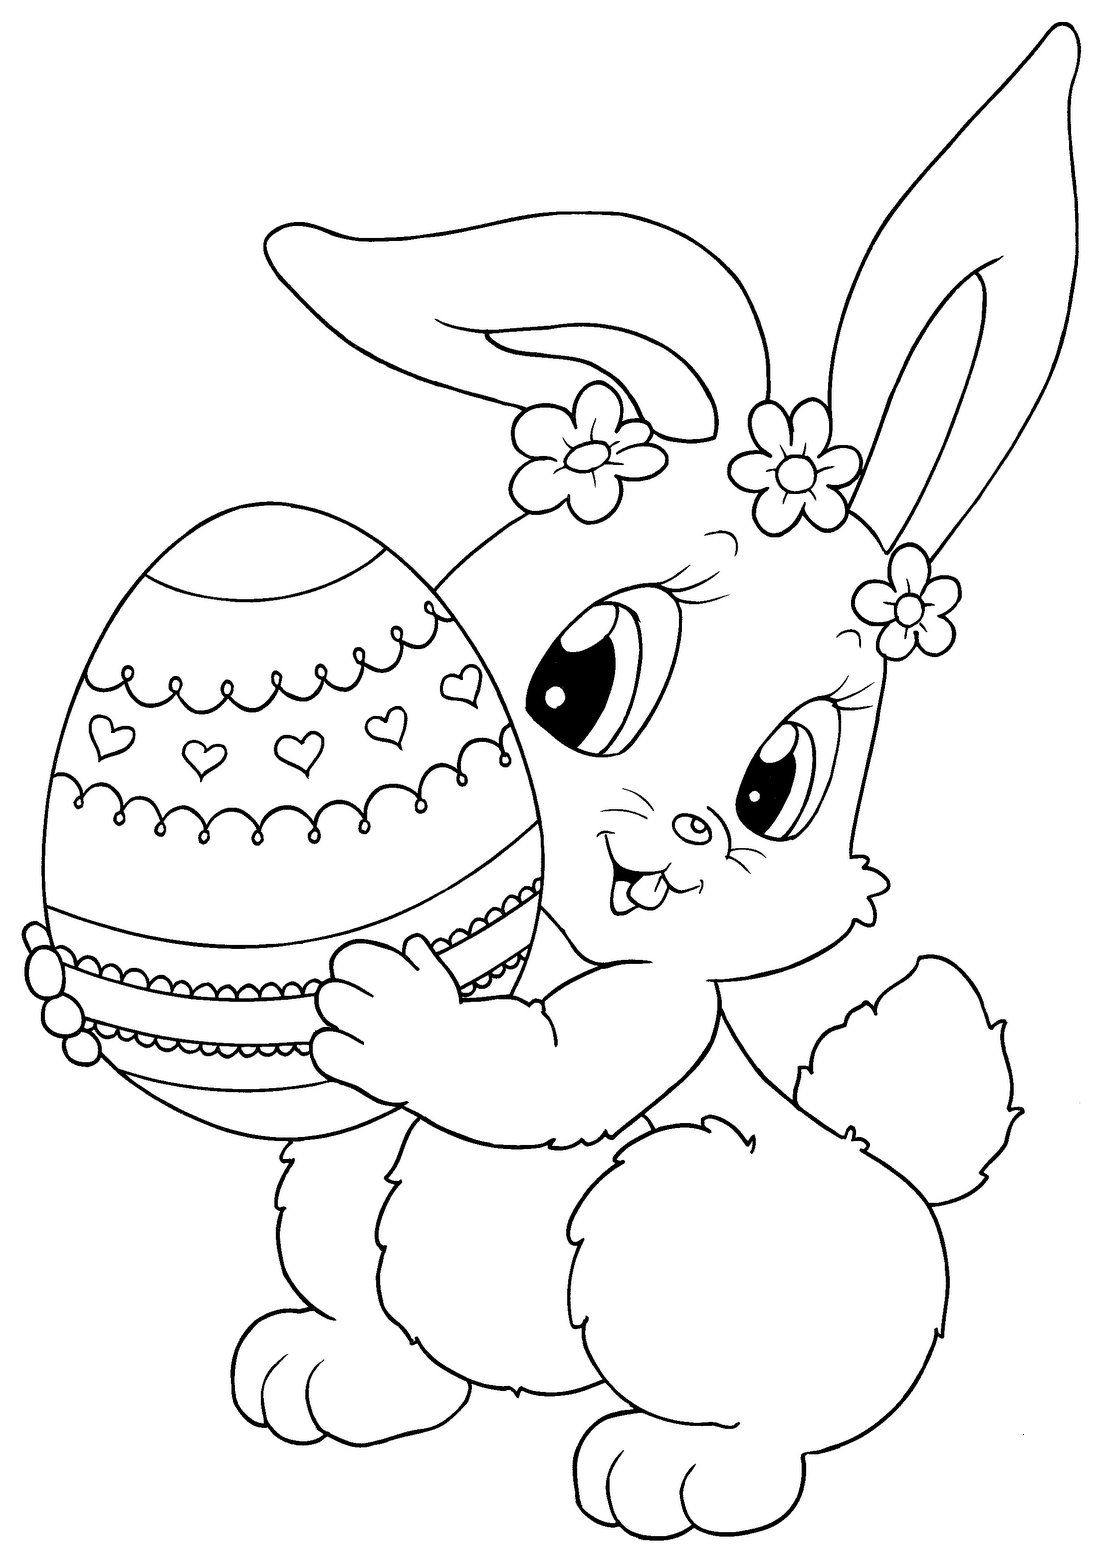 Top 15 Free Printable Easter Bunny Coloring Pages Online | Зентангл - Coloring Pages Free Printable Easter